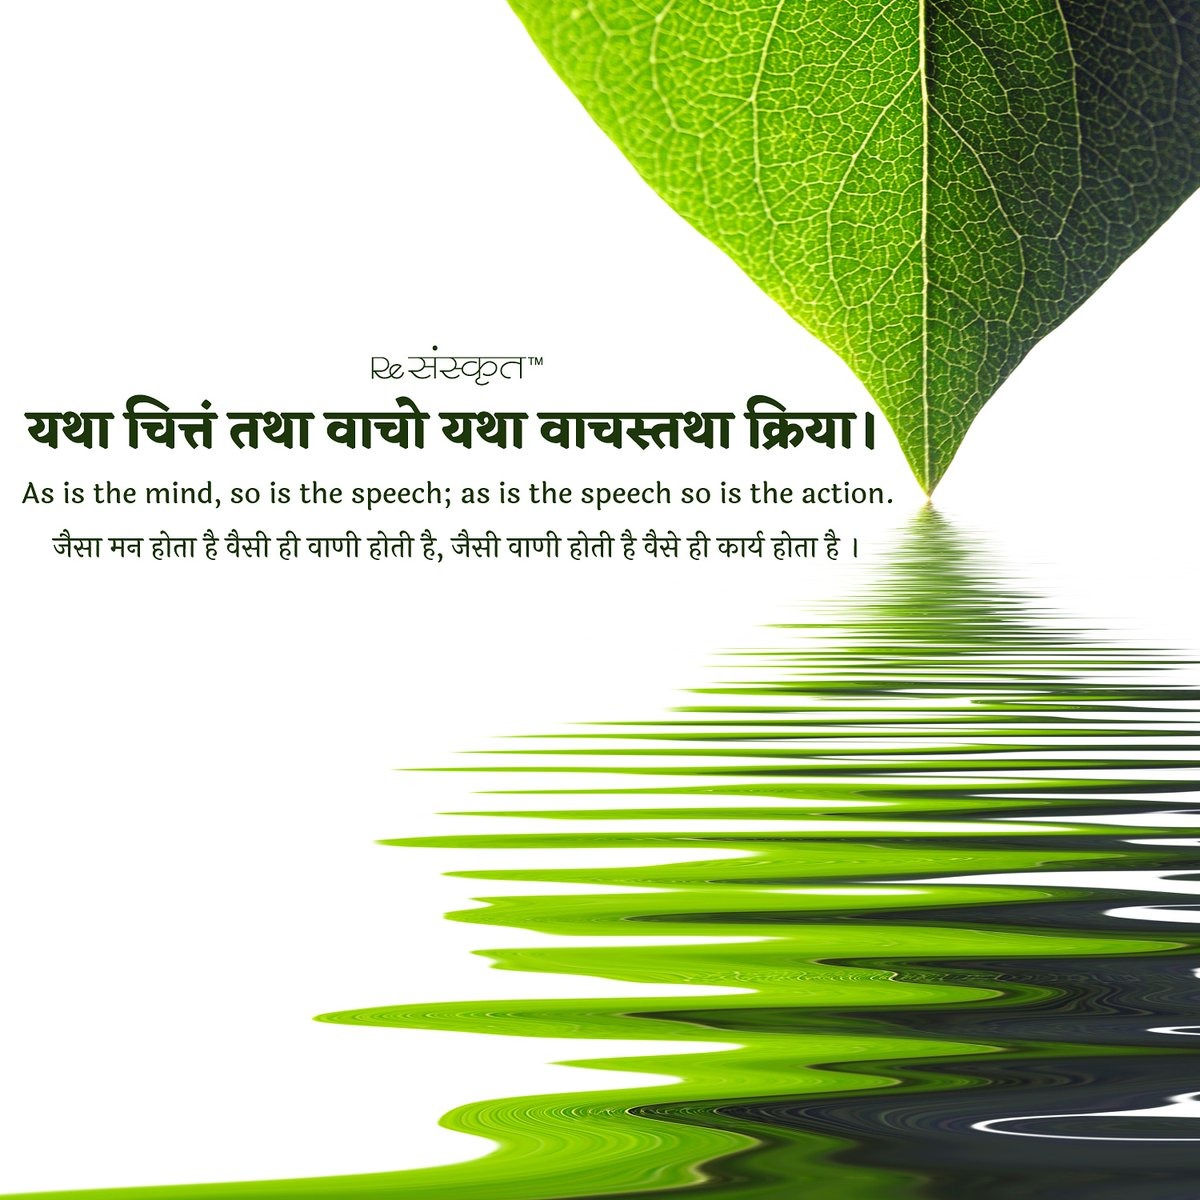 Do your actions reflect your thoughts? Control your thoughts and your actions will follow.  #reflect #sanskrit #india #quotes #quoteoftheday #sayings #wisdom #quotestoliveby #contemplate<br>http://pic.twitter.com/OKaRXXbcuZ